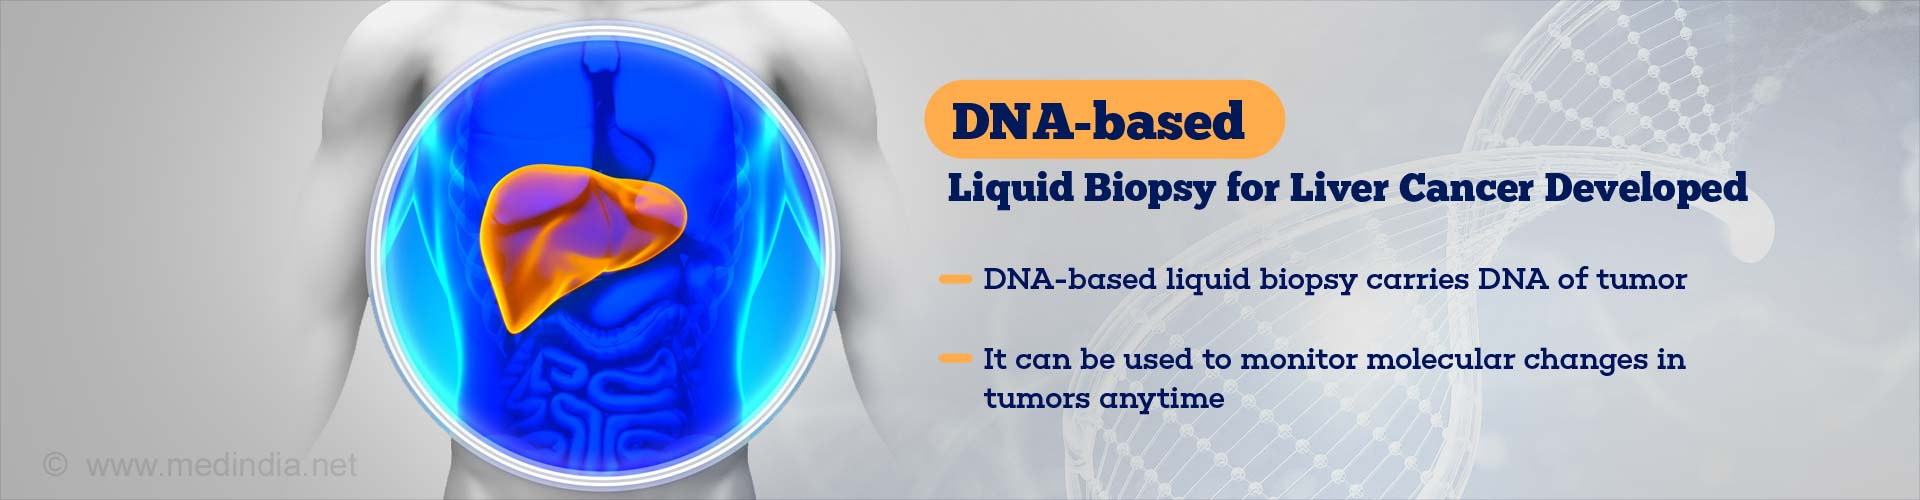 Liquid Biopsy With Tumor DNA - New Detection of Liver Cancer